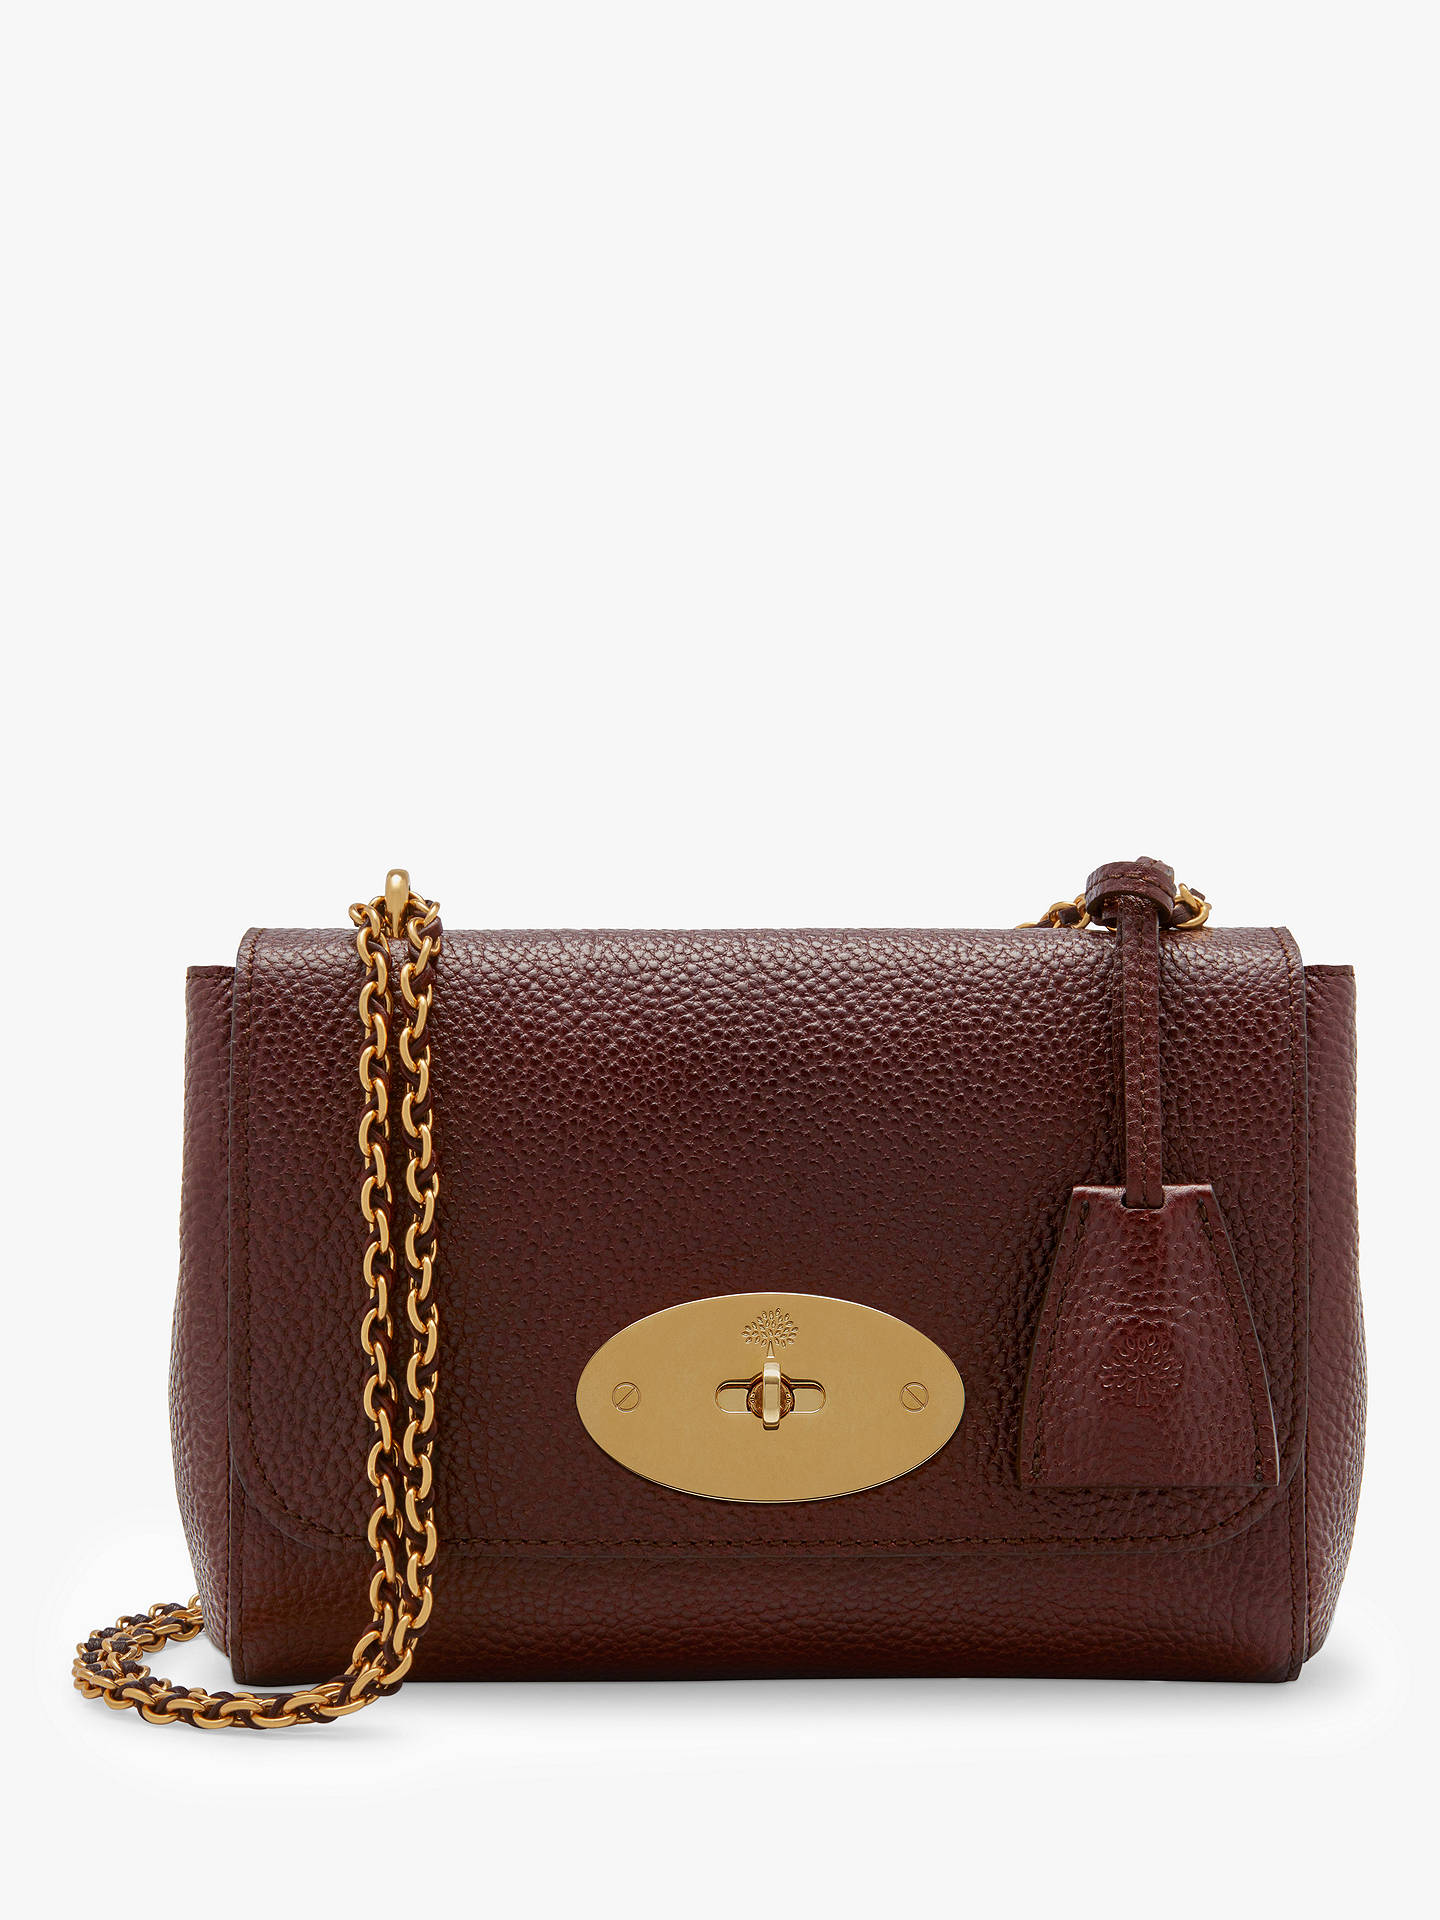 9ae2865b2130 Mulberry Lily Classic Grain Leather Shoulder Bag at John Lewis ...